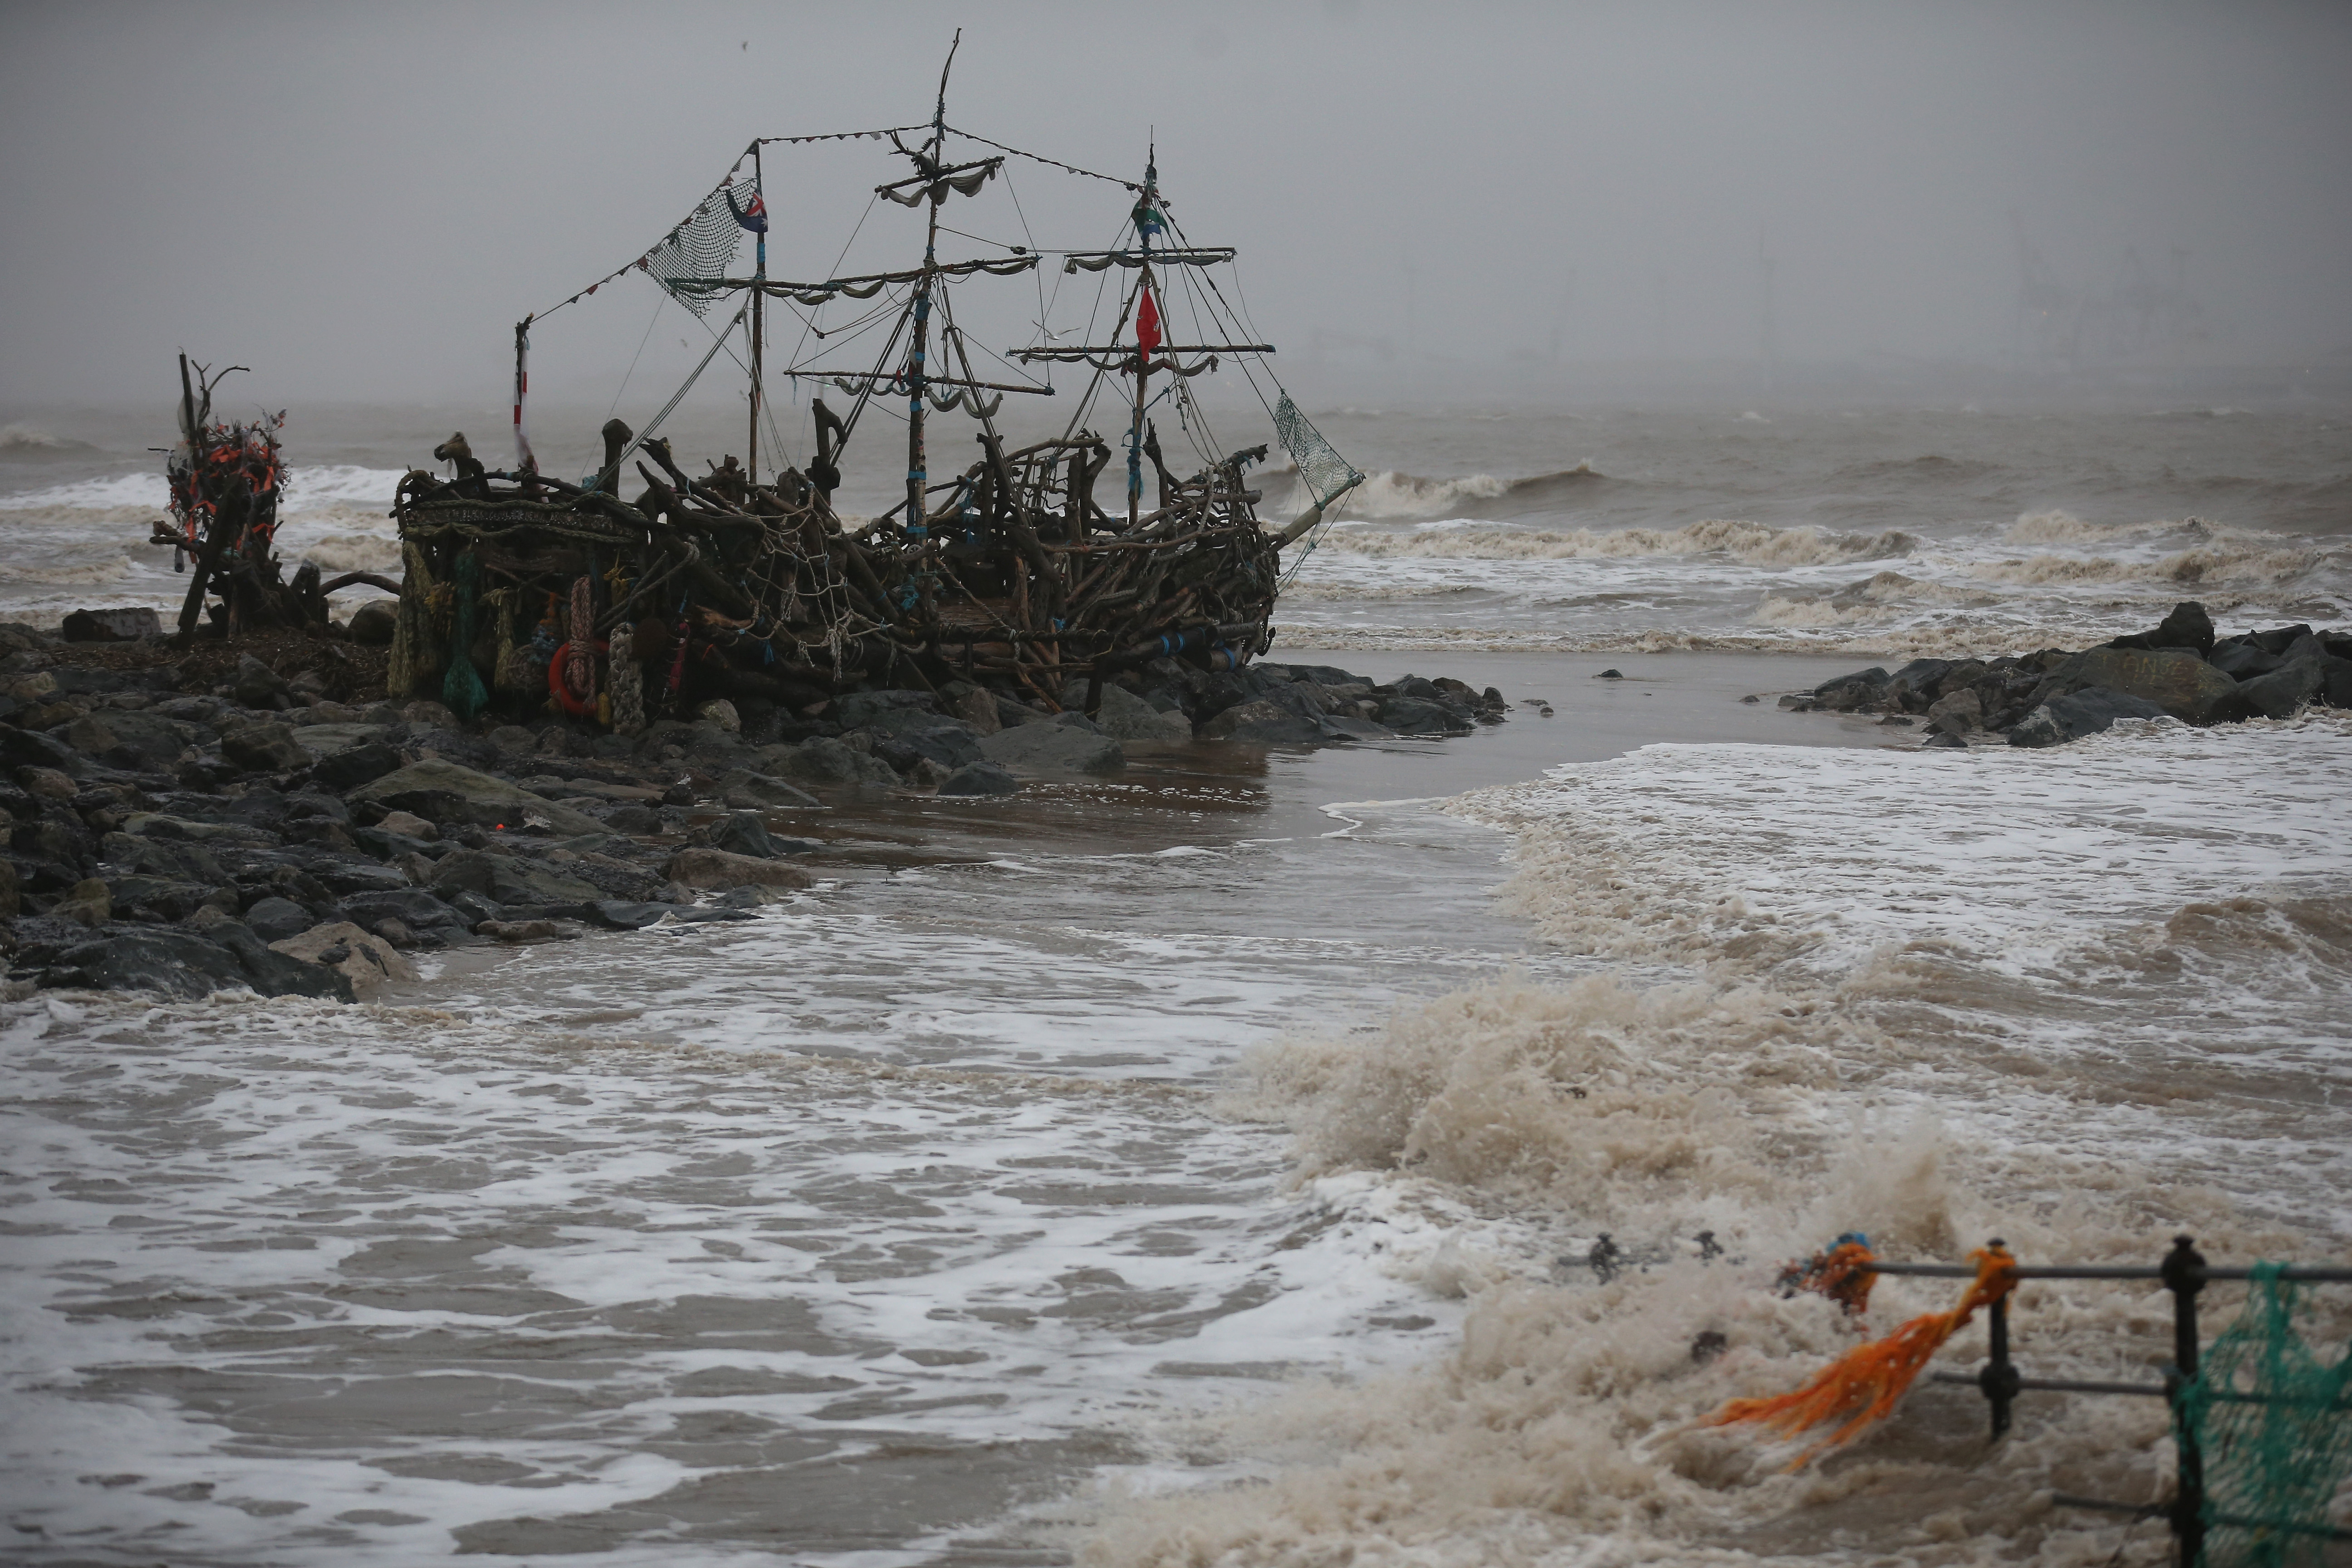 Live view of College Station. The pirates have taken Olsen and are making plans to dock in Spence Lake.